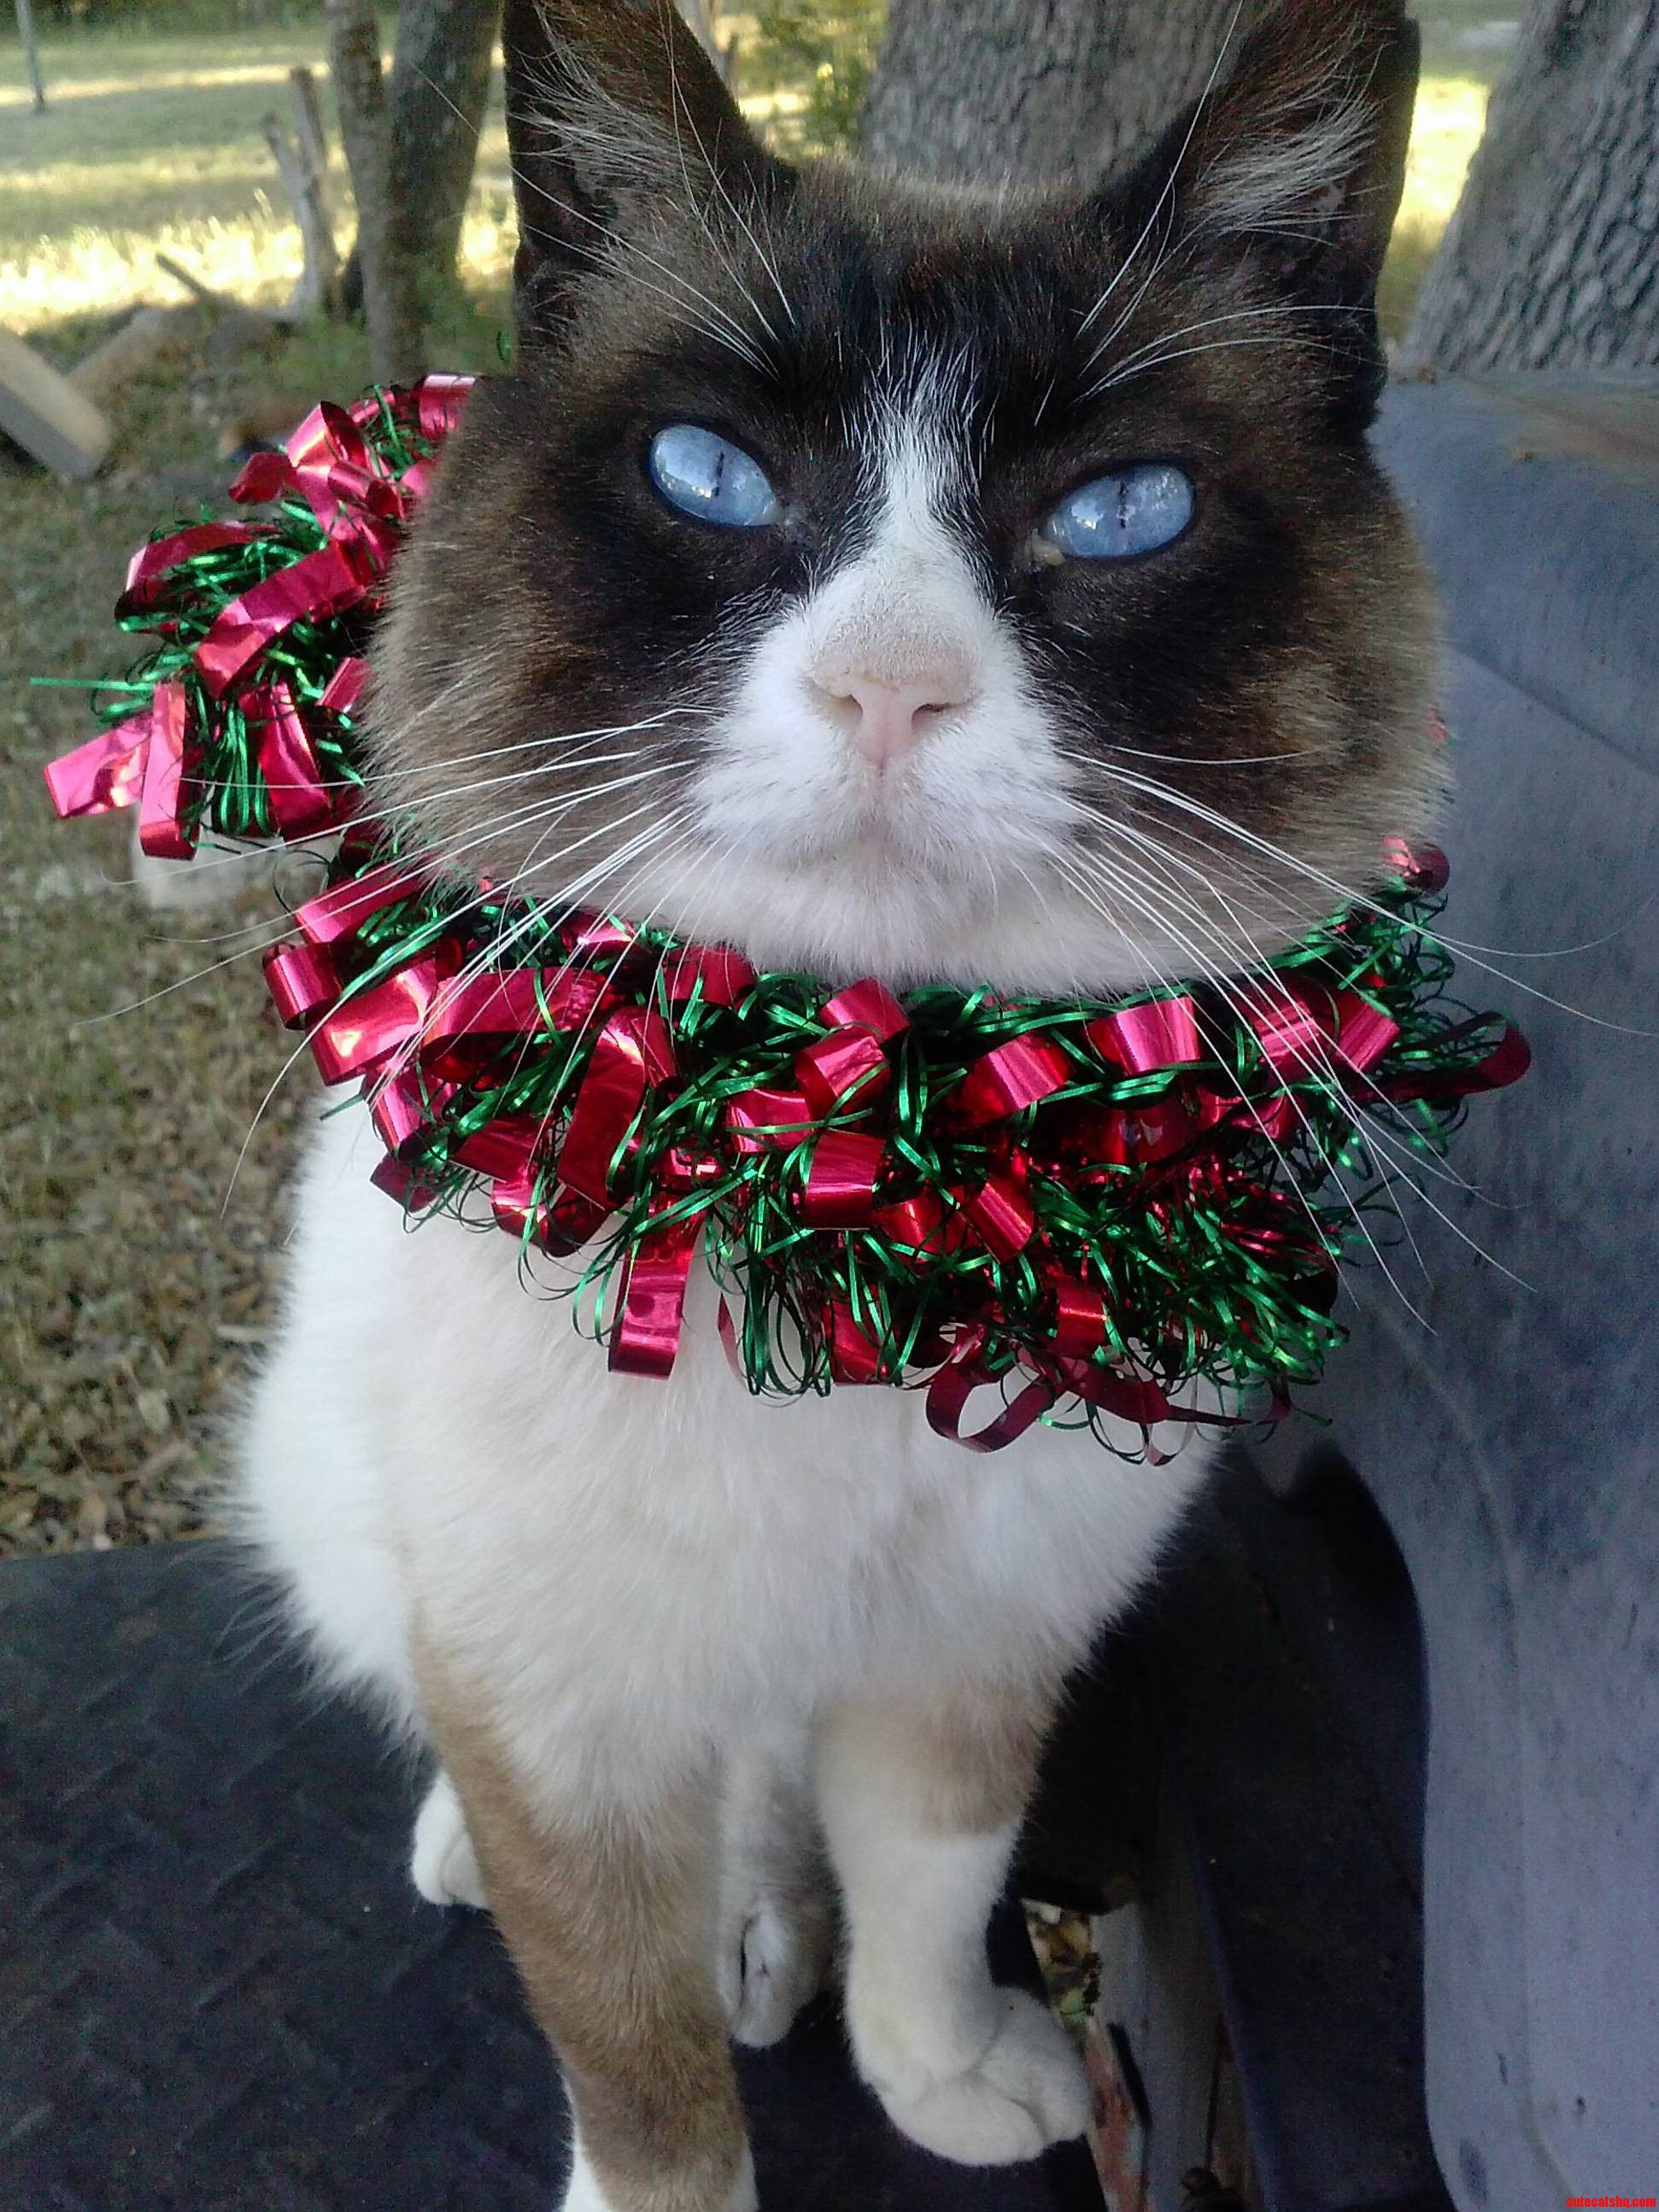 My Cat In Christmas Decorations.